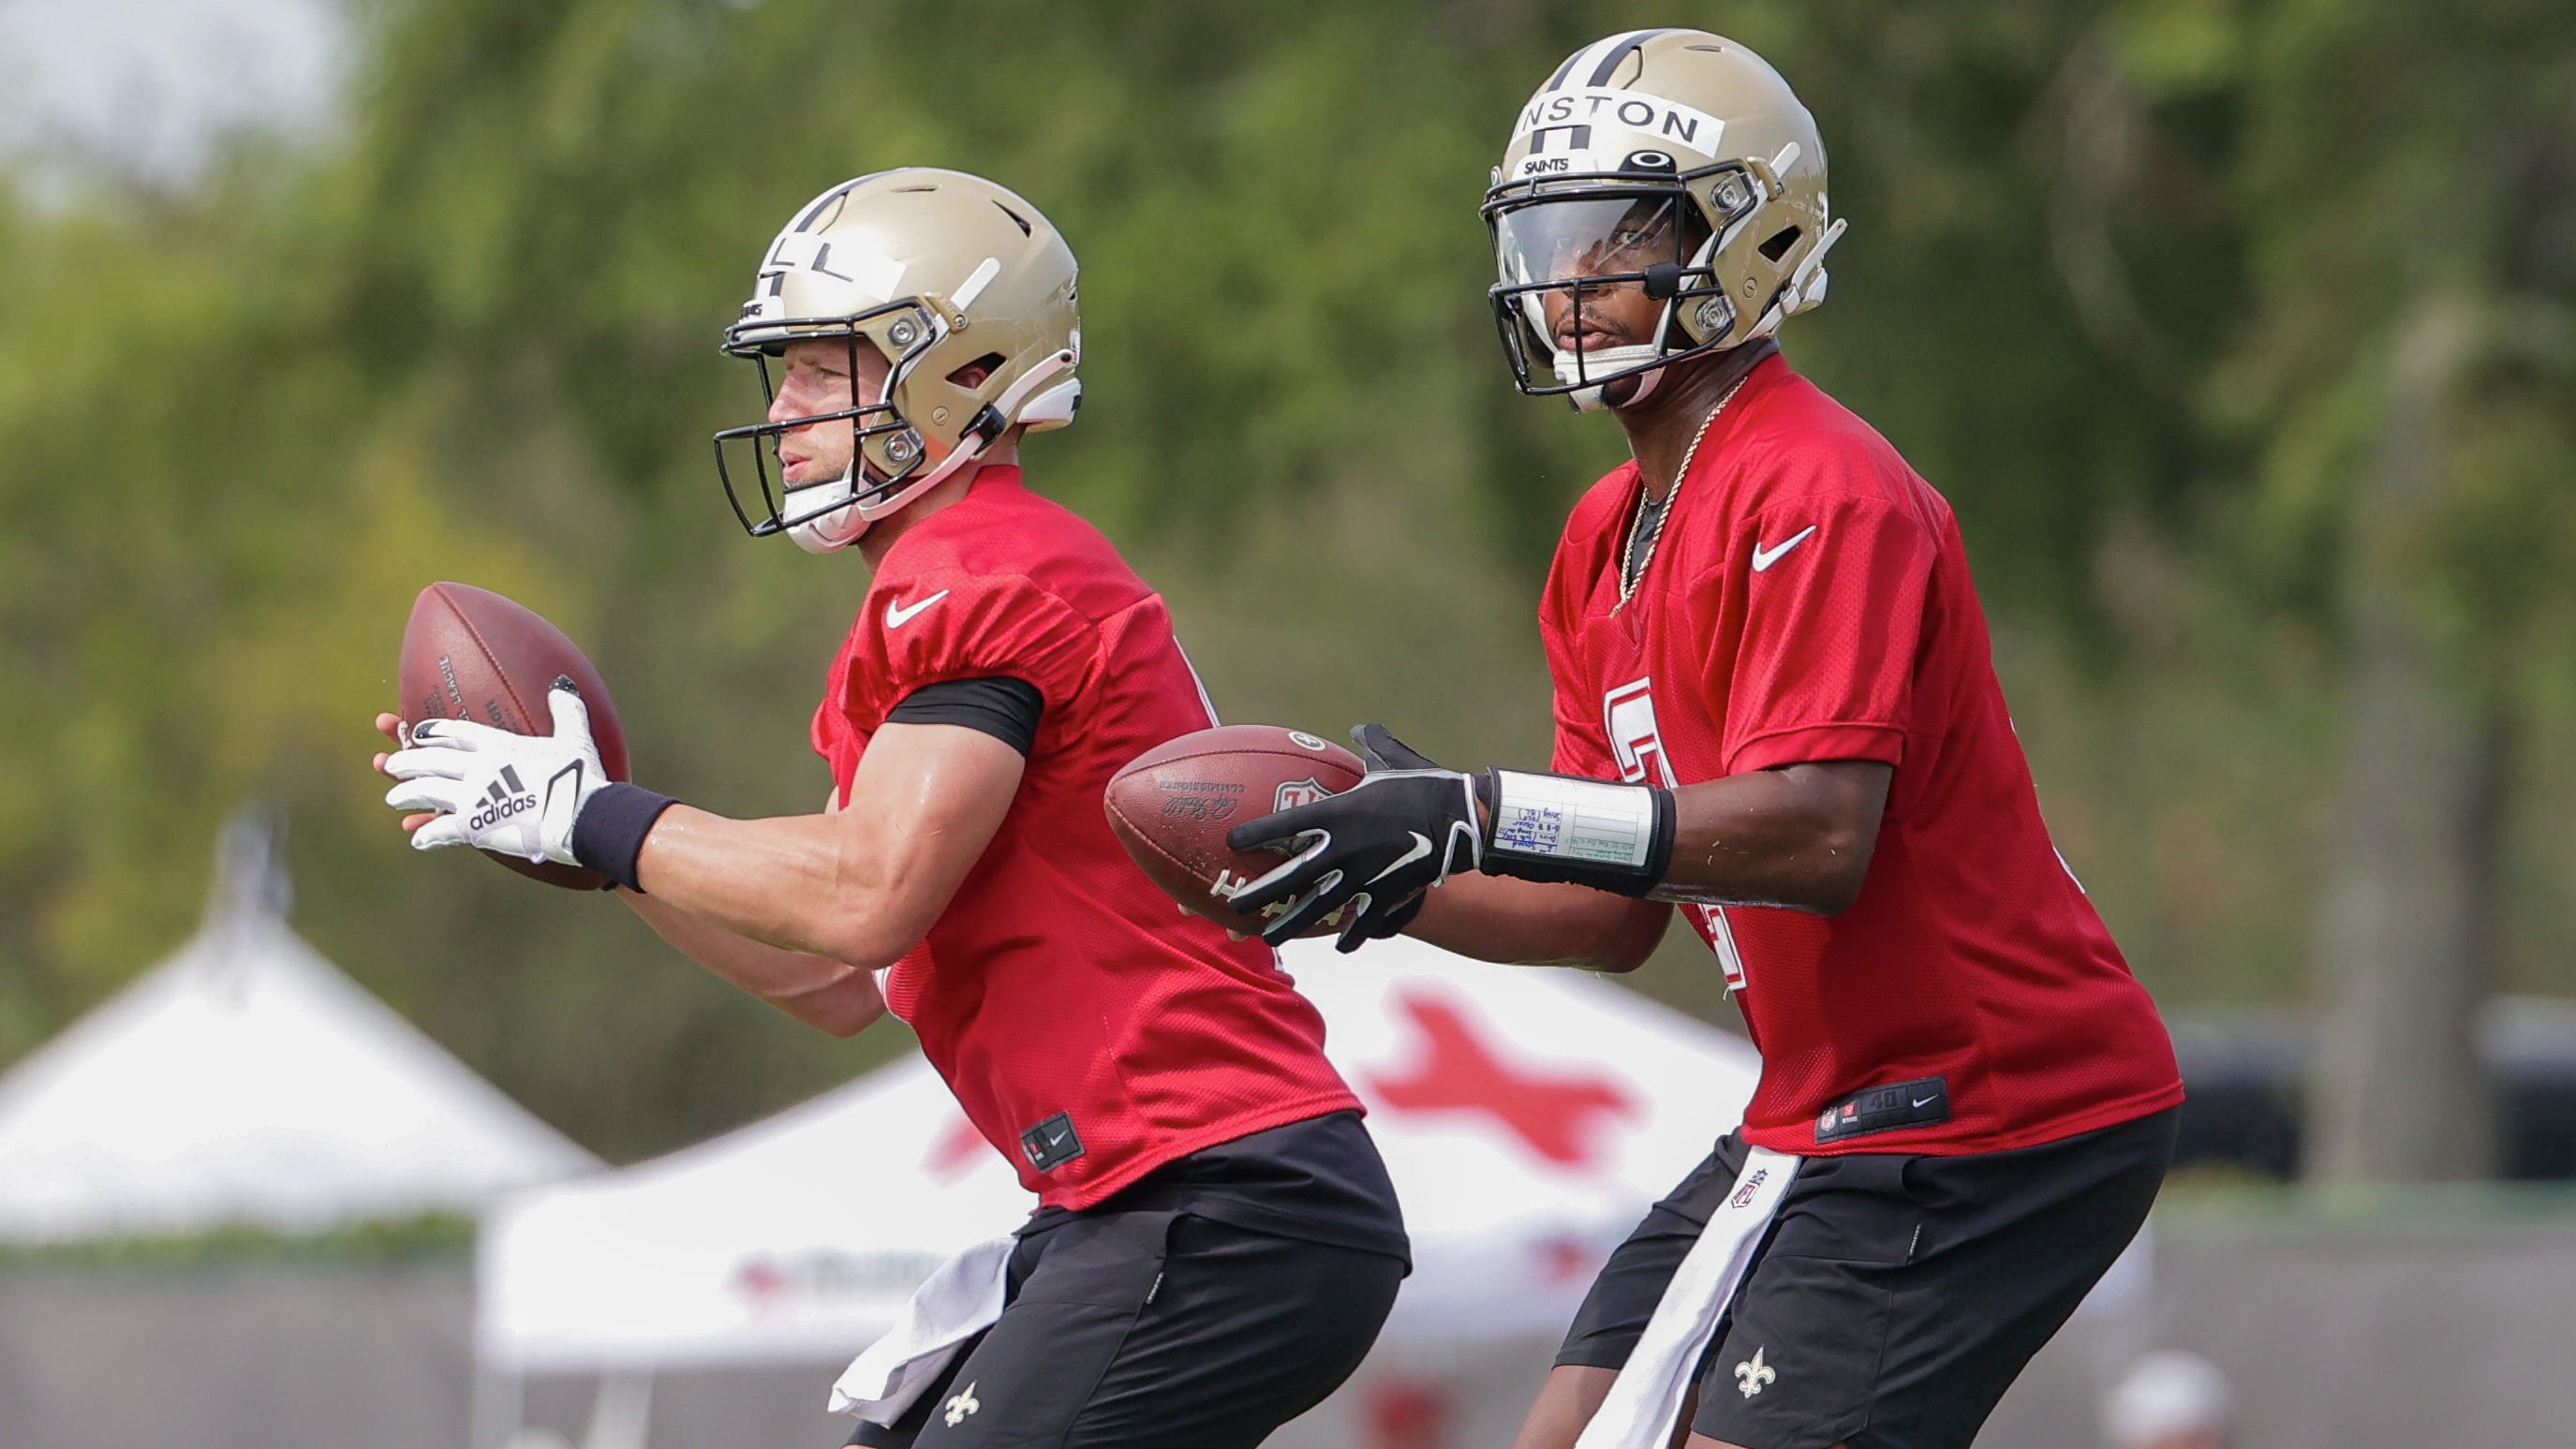 Saints 2021 training camp observations, Day 2: Taysom Hill sticks on 1st team & where's the leg?